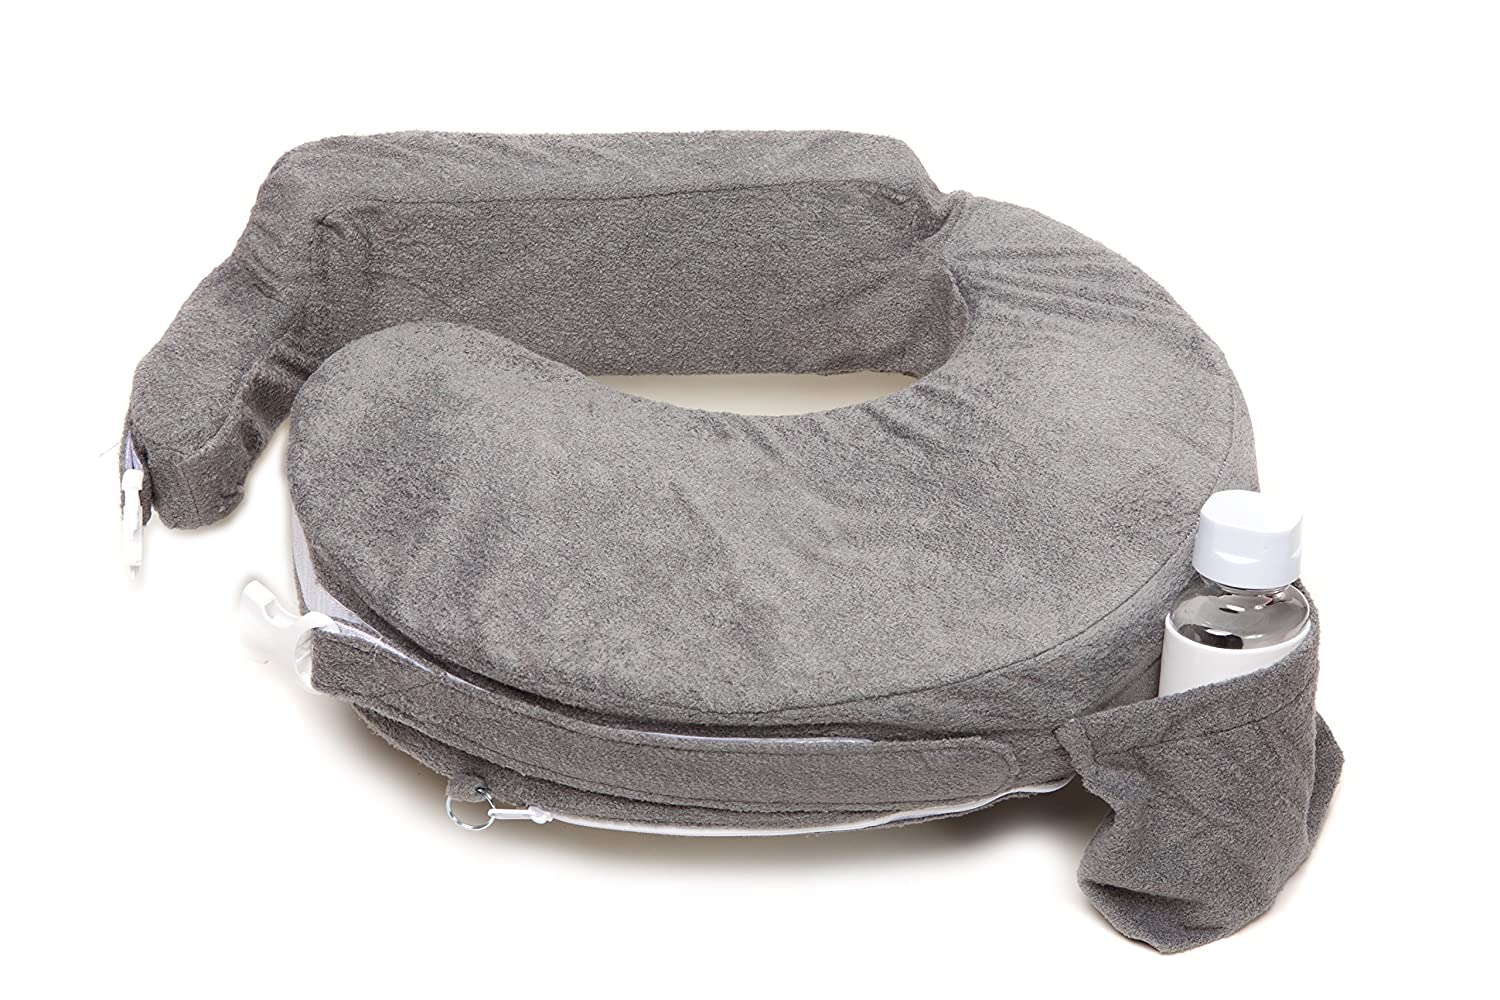 My Brest Friend Nursing Pillow Deluxe Slipcover, Evening, Dark Grey (pillow not included) Zenoff Products 462